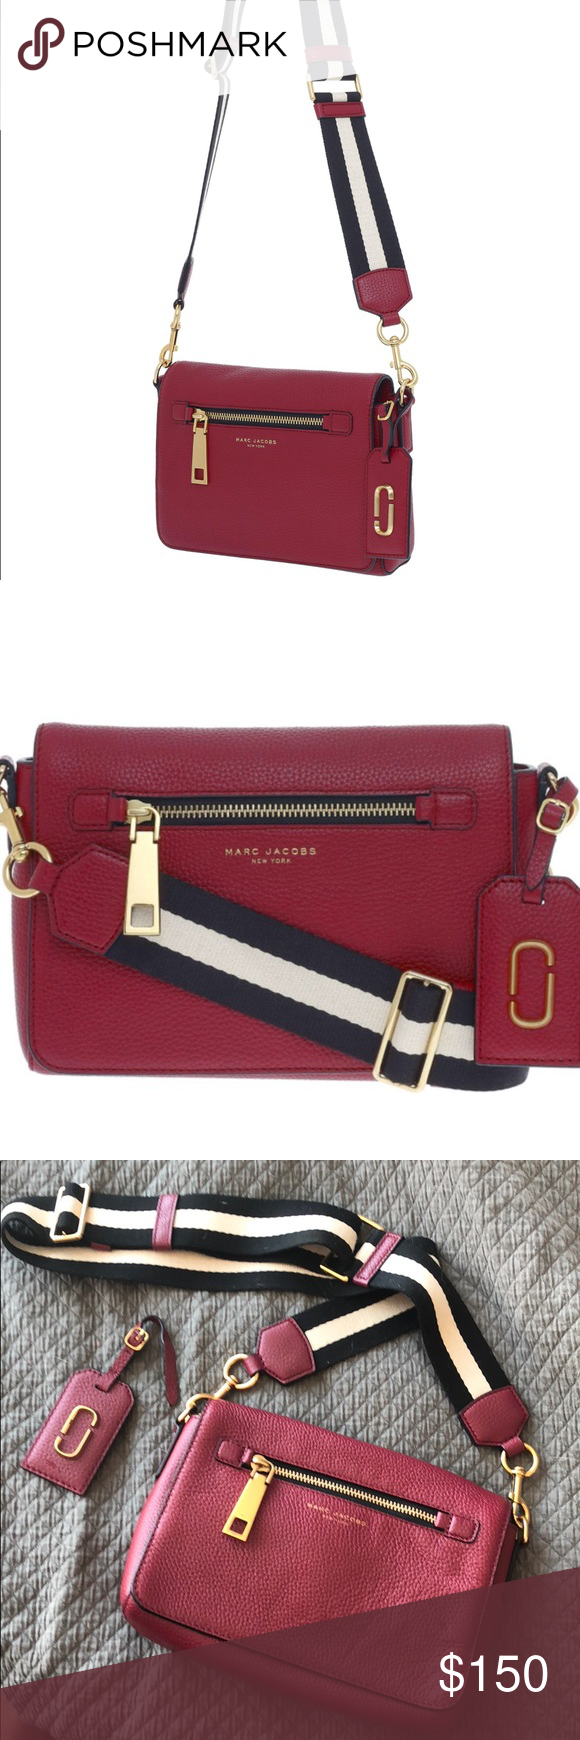 Marc Jacobs Gotham Bag in Merlot Perfect condition!!! Hardly used. Great fall and winter side satchel. Lovely merlot color. Marc Jacobs Bags Satchels